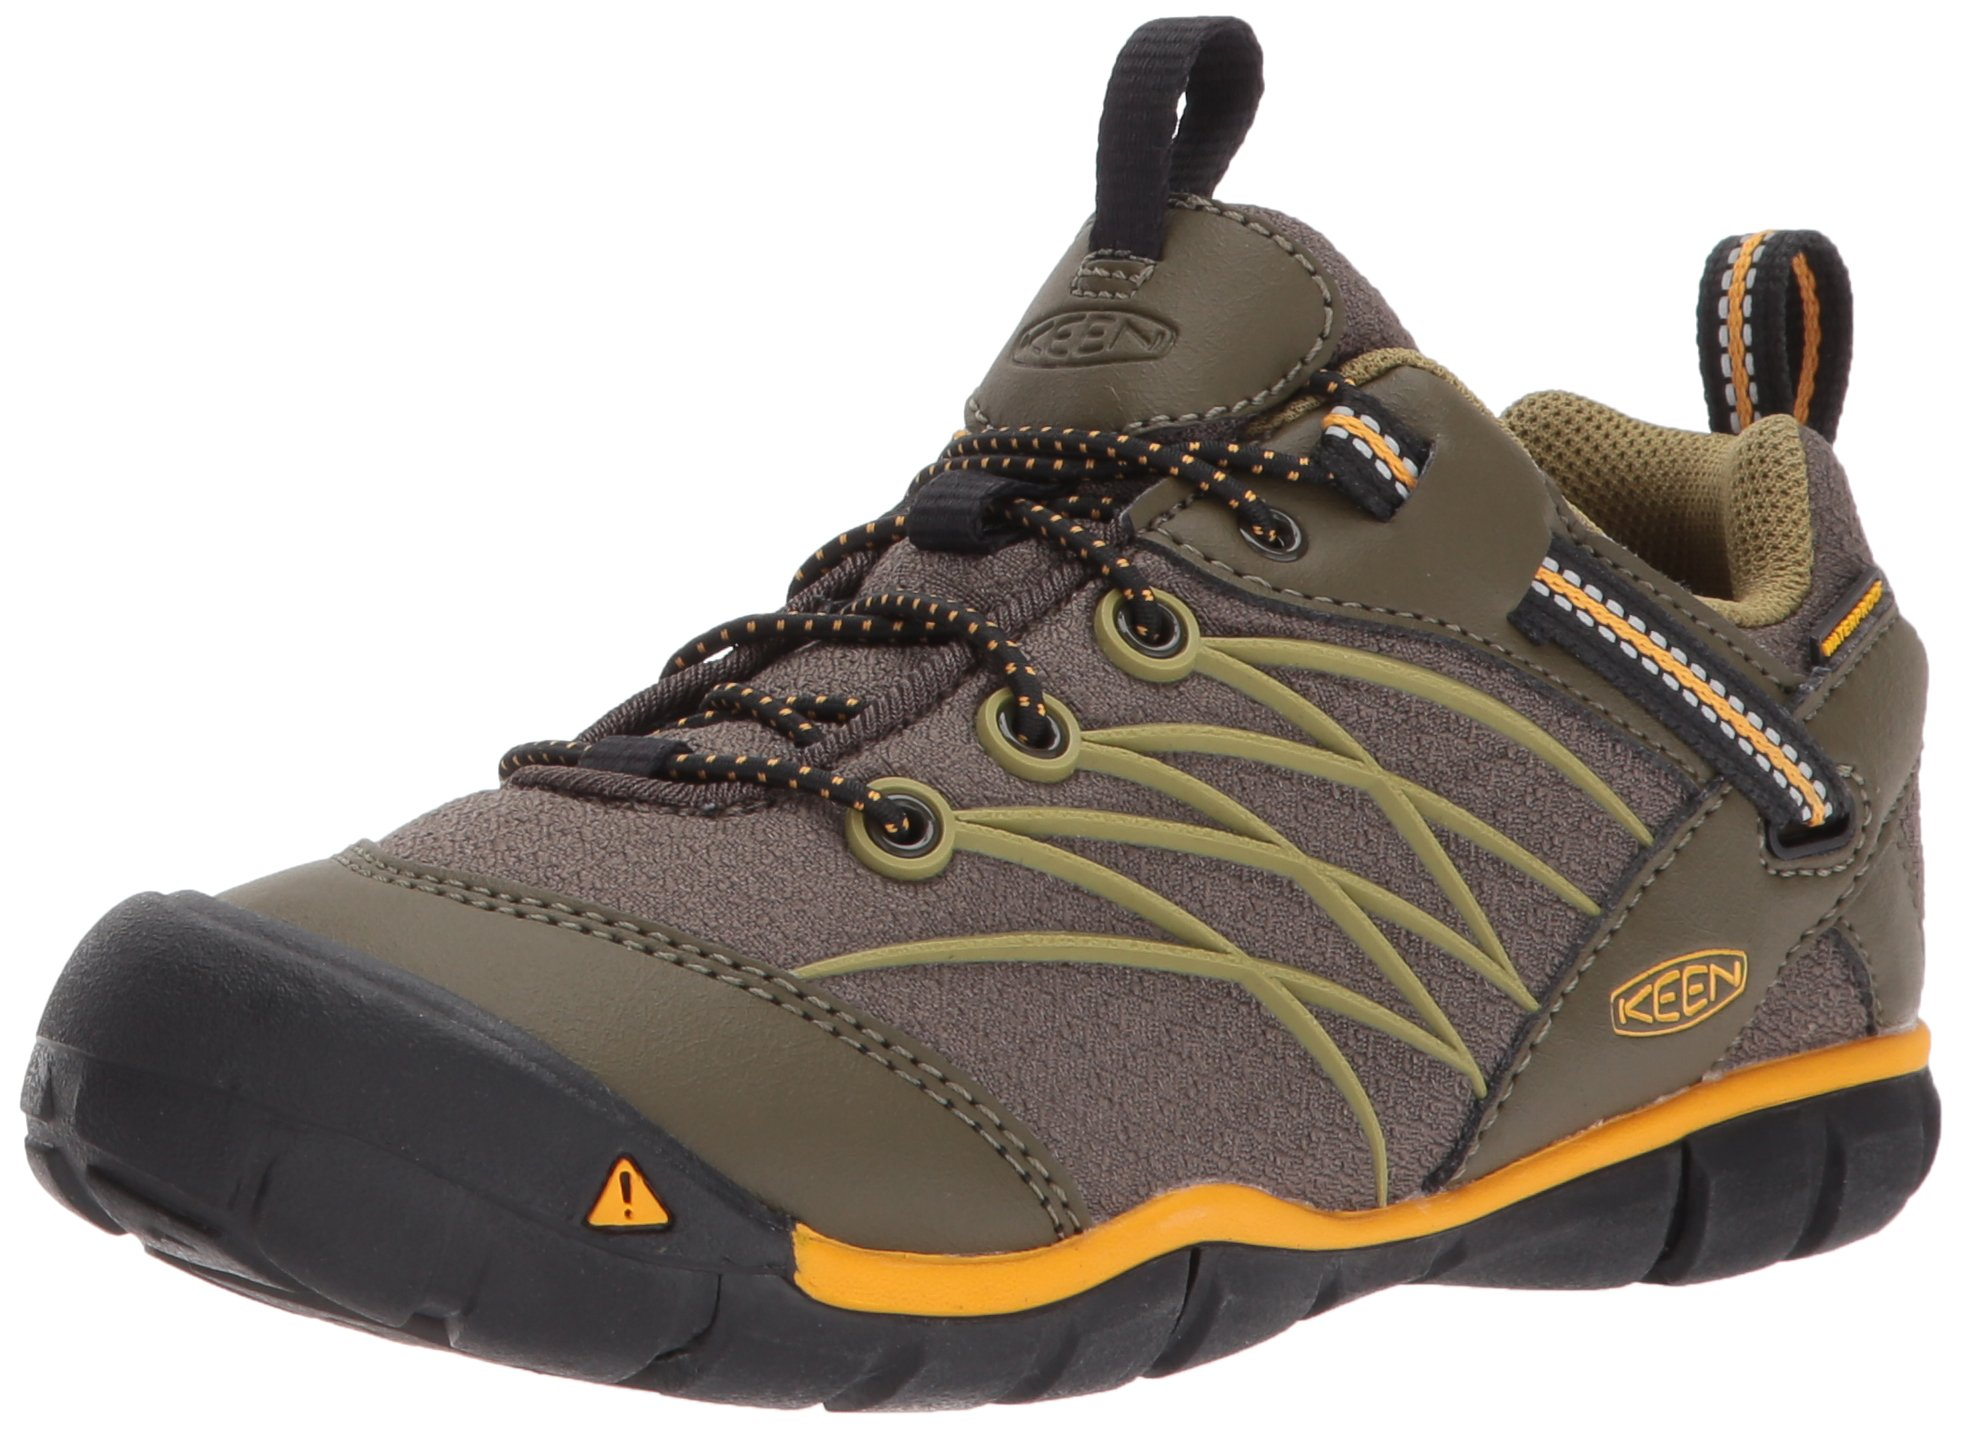 Keen Unisex Kid's Chandler CNX WP Hiking Shoe Dark Olive/Citrus 6 Youth US Big Kid